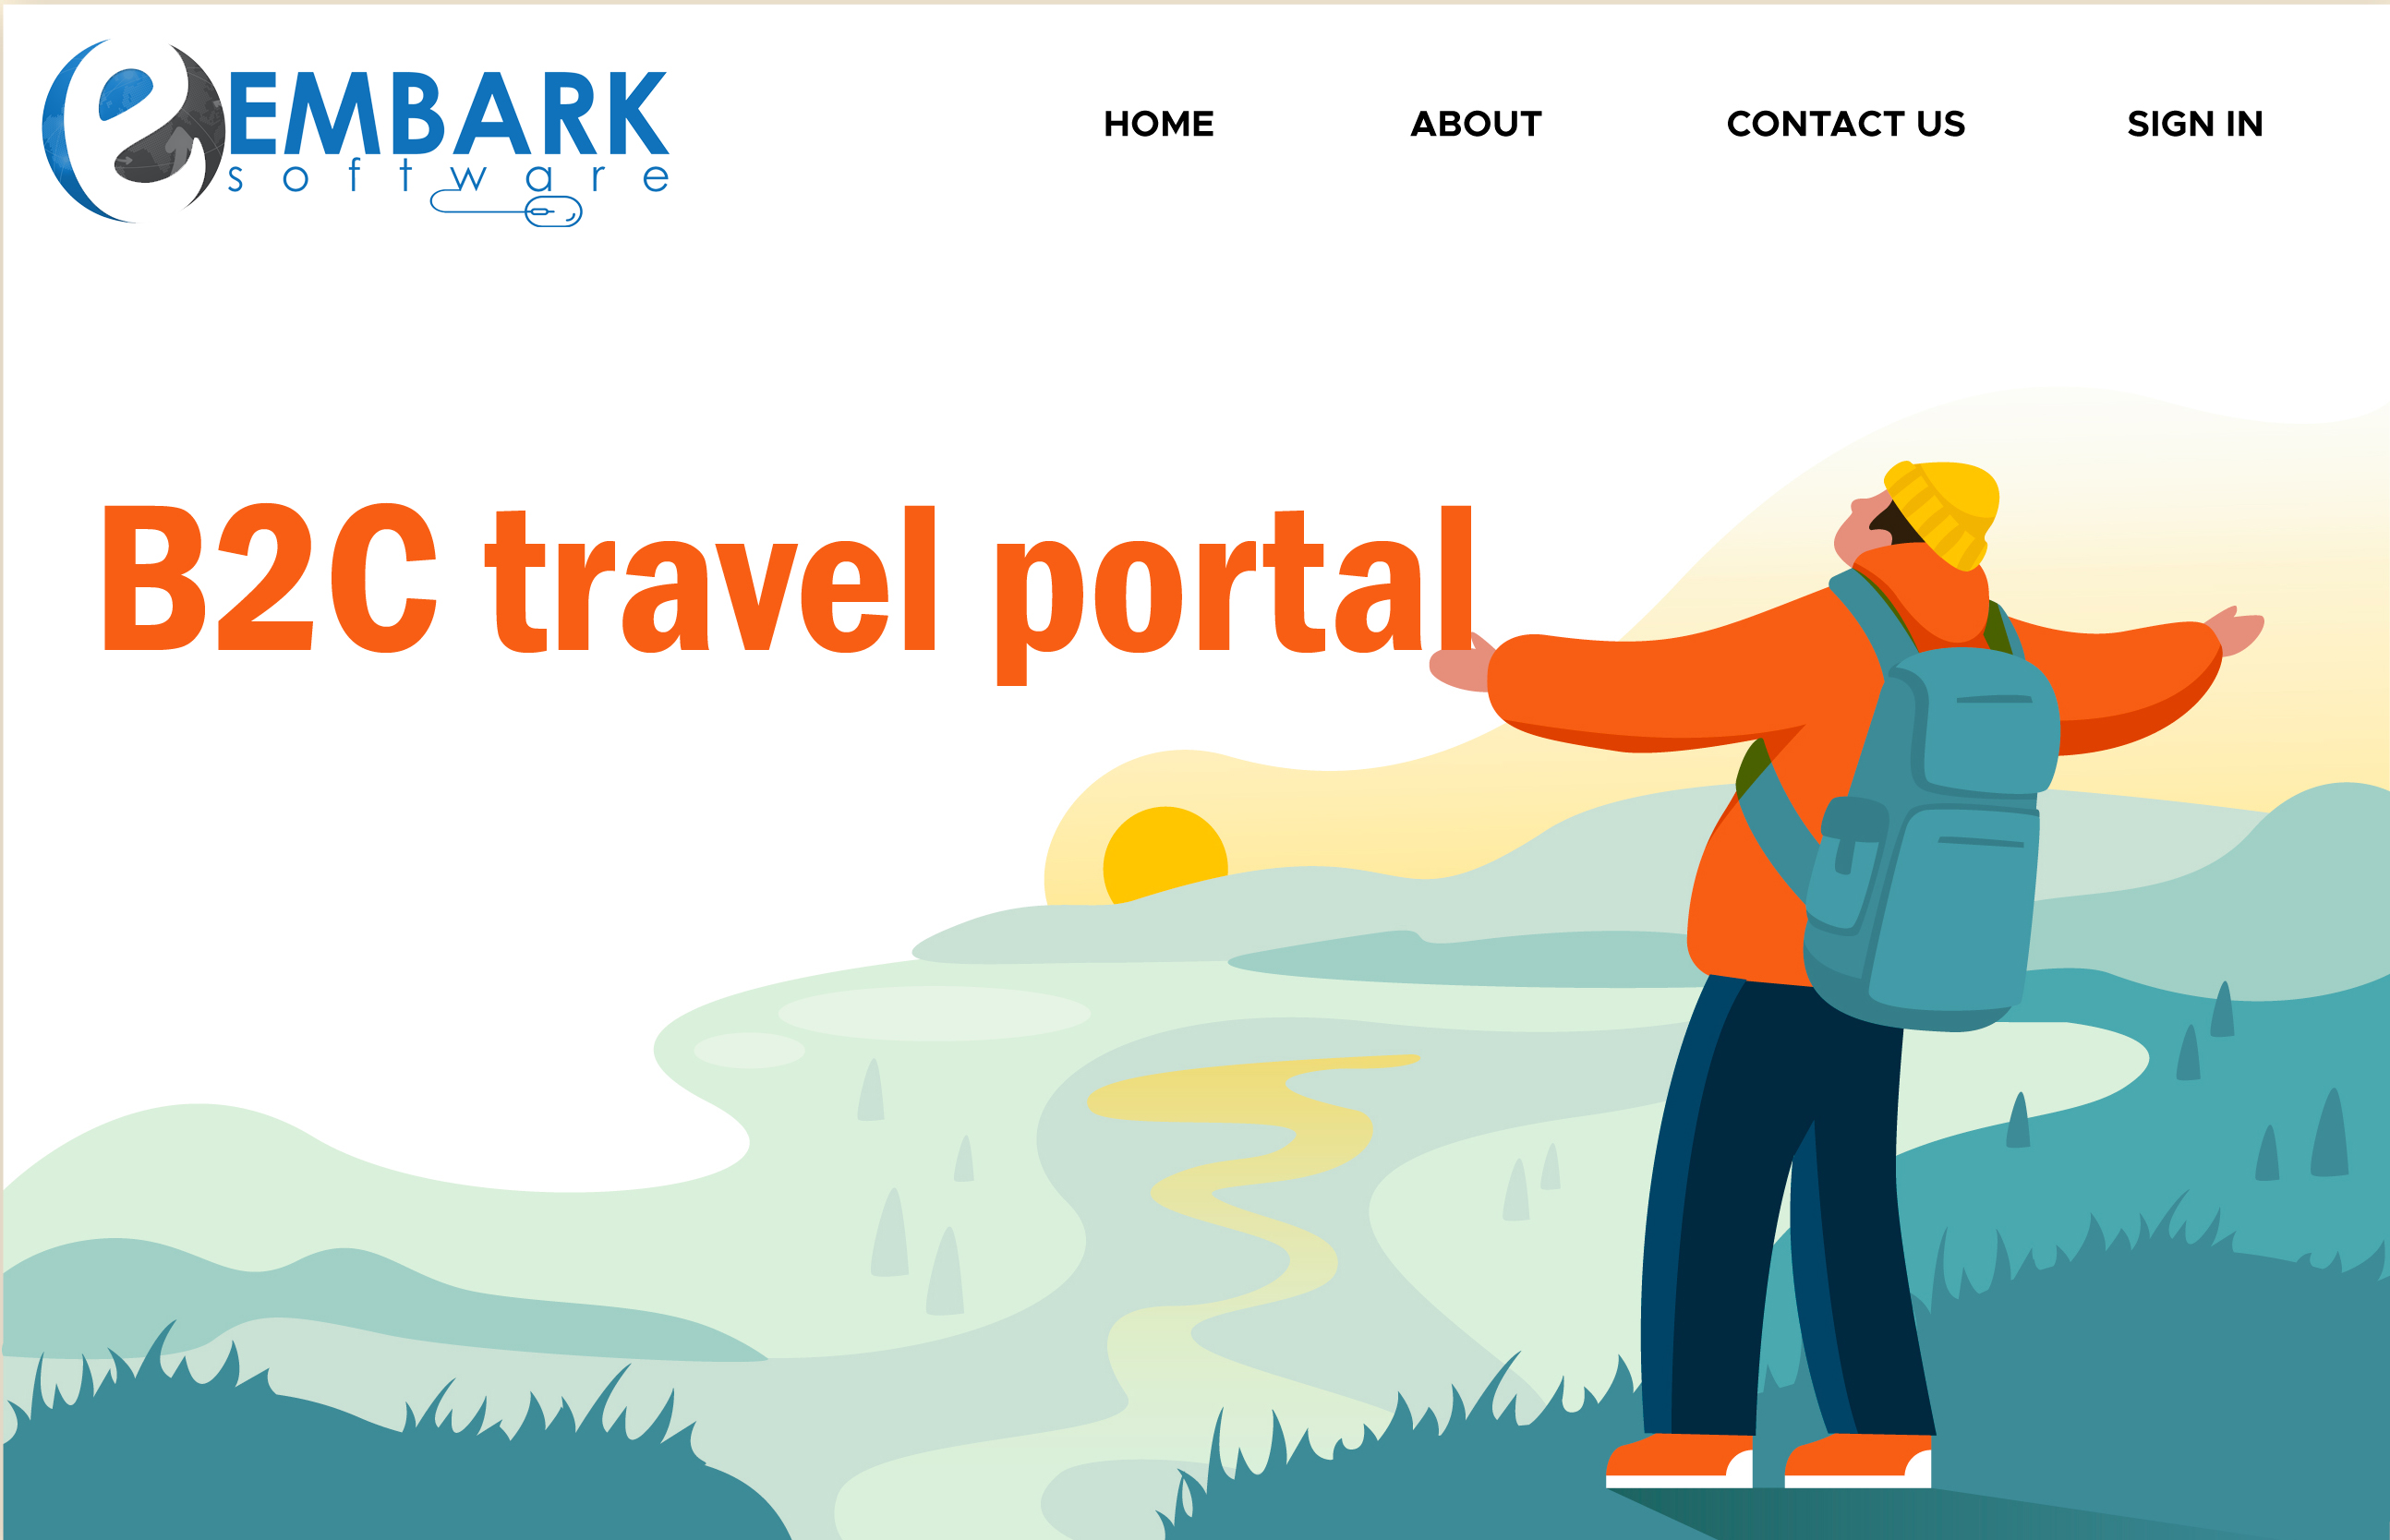 Why to choose the Embark Software for B2C travel portal solution?